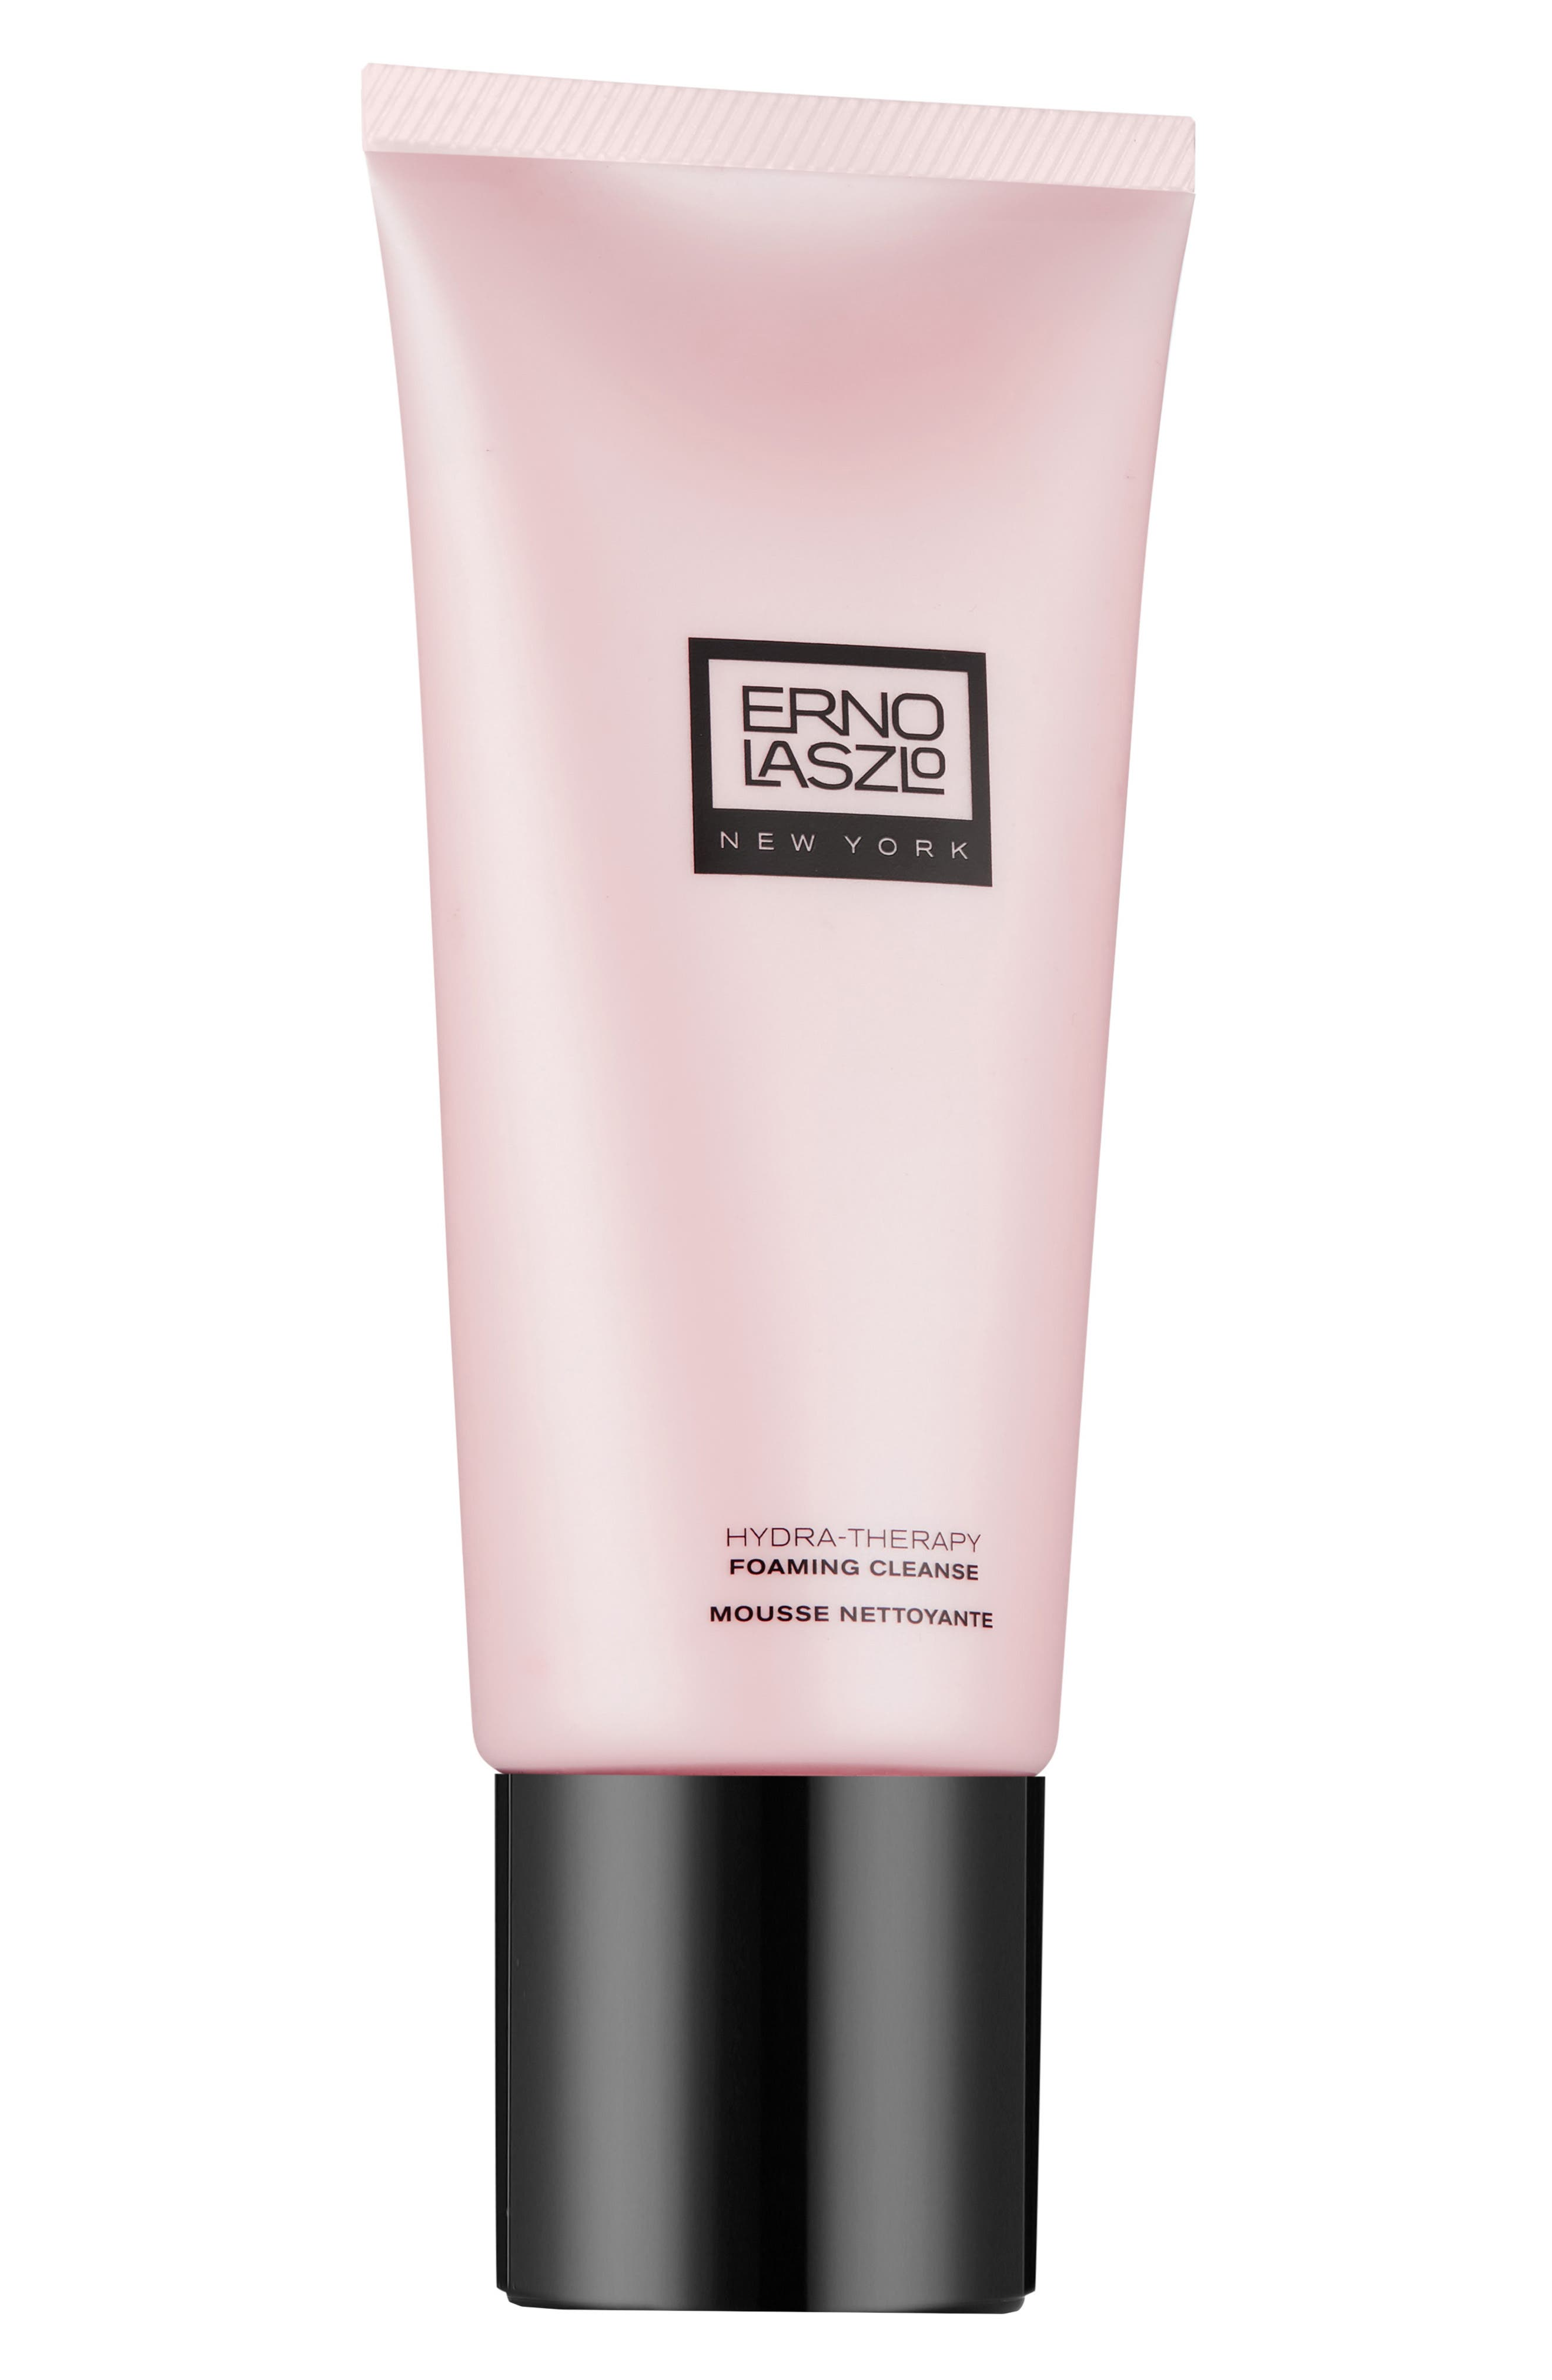 Hydra Therapy Foaming Cleanse